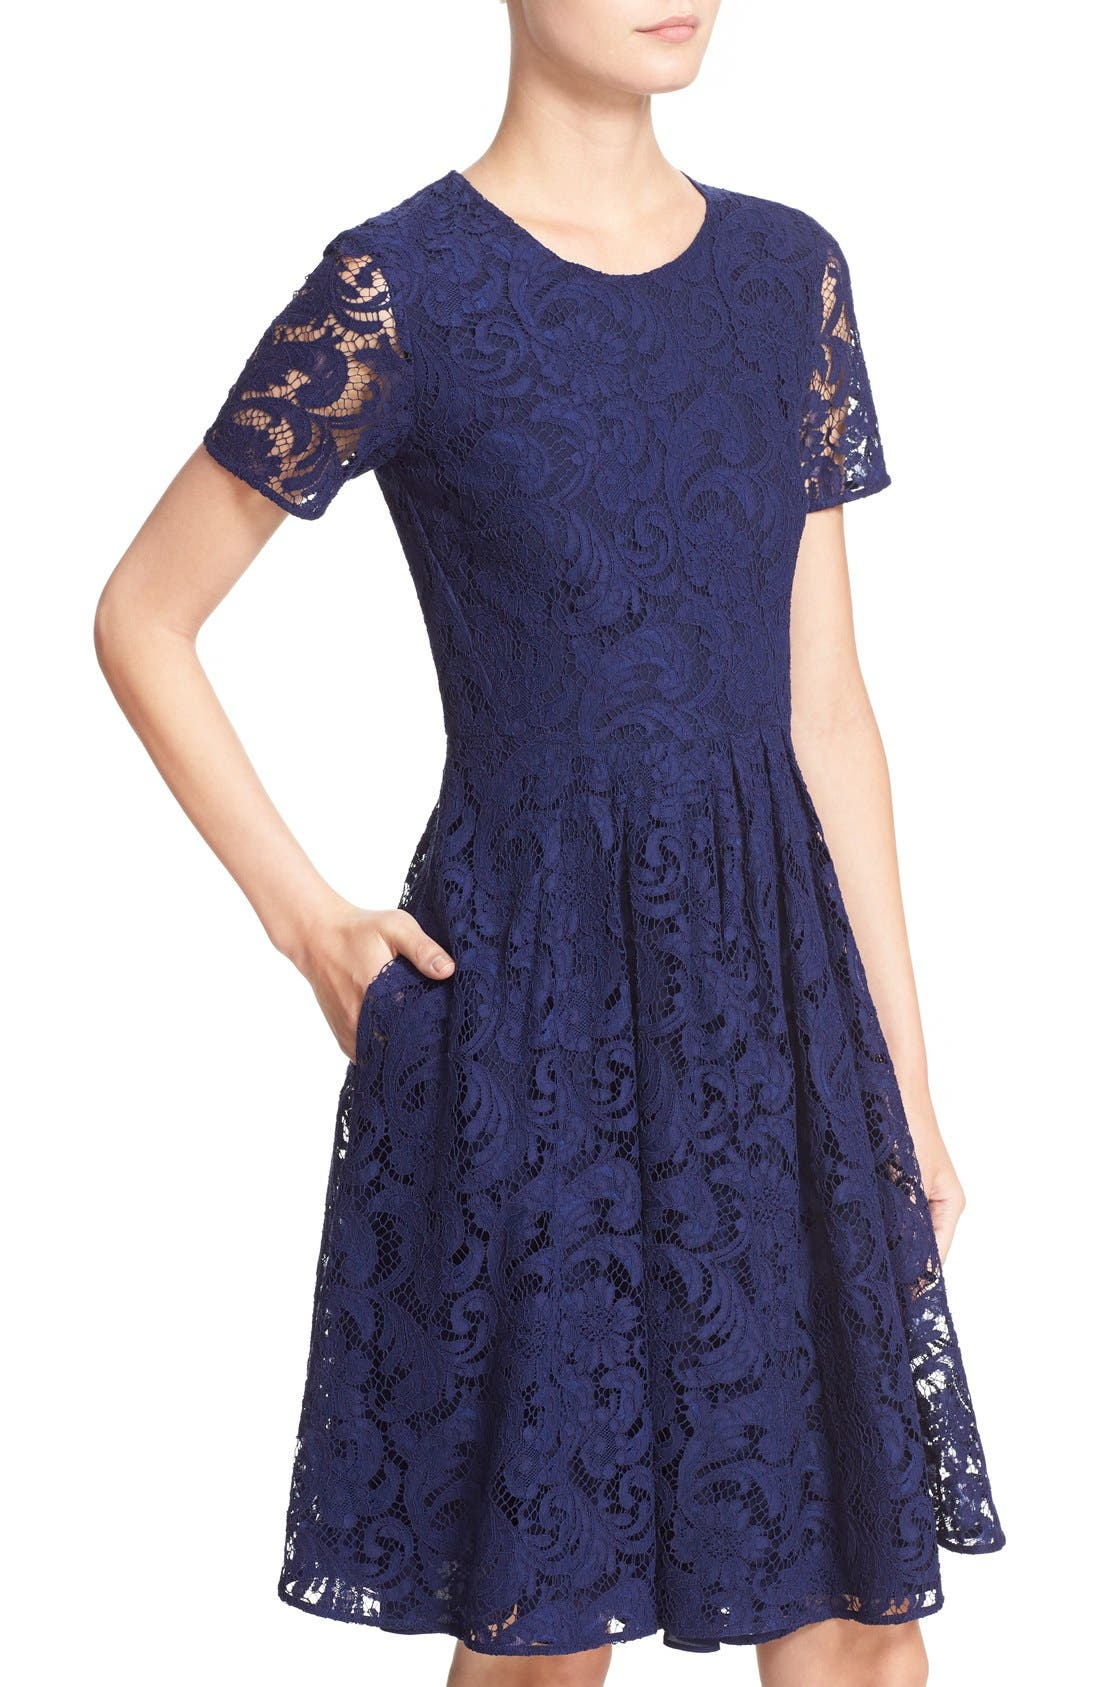 BURBERRY LONDON,                             'Alice' Short Sleeve Corded Lace Fit & Flare Dress,                             Alternate thumbnail 6, color,                             495